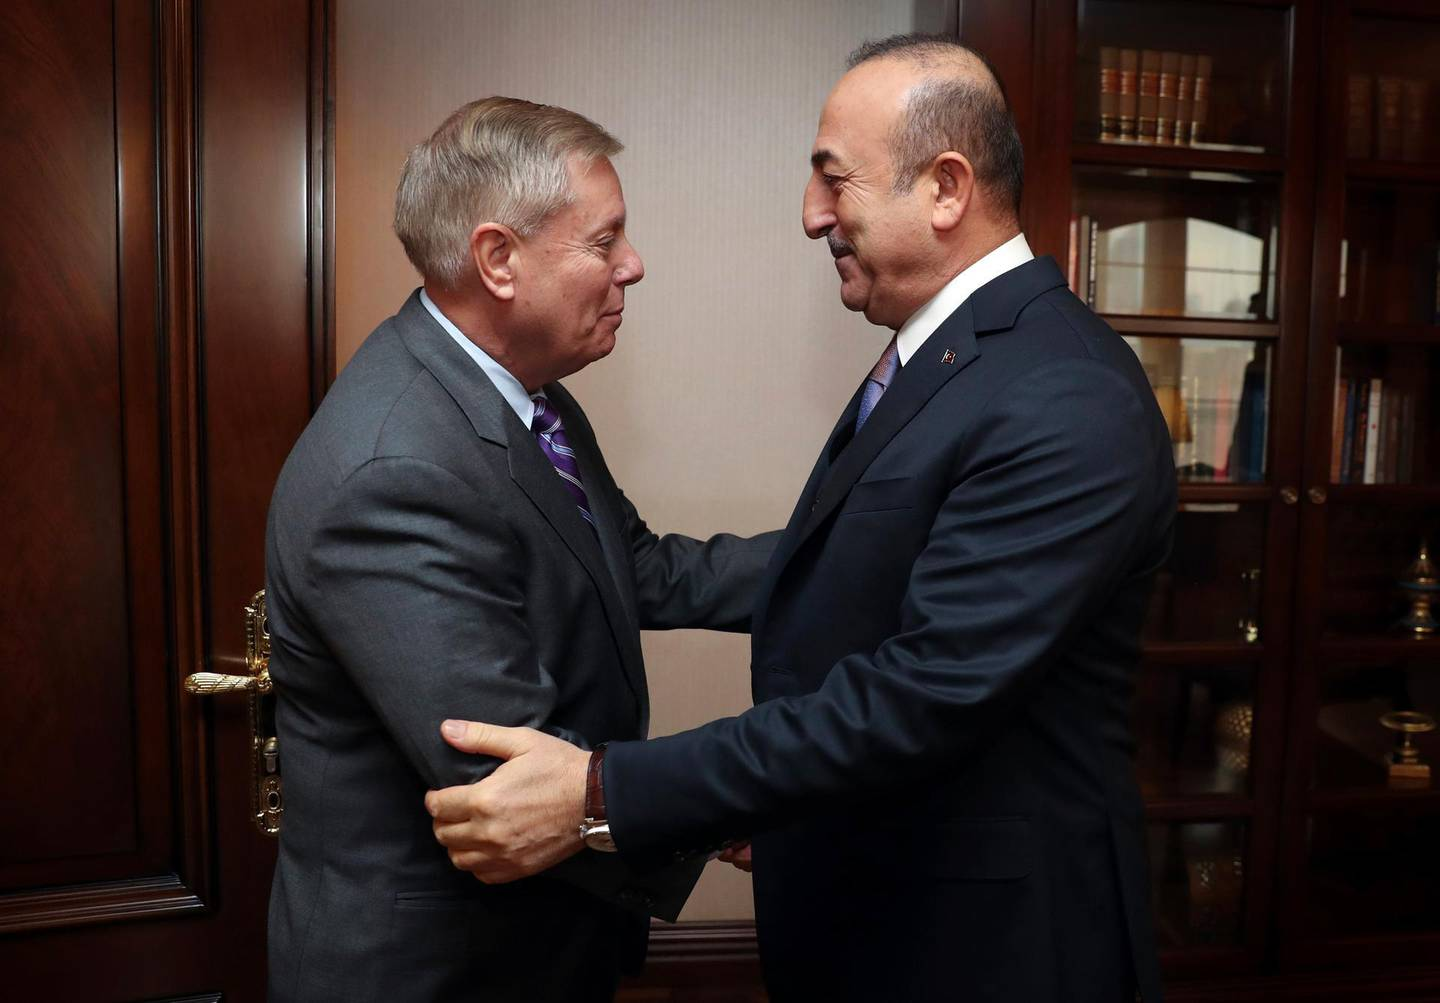 Turkey's Foreign Minister Mevlut Cavusoglu, right, and U.S. Republican Senator Lindsey Graham shake hands before a meeting in Ankara, Turkey, Friday, Jan. 18, 2019. Graham has discussed the situation in Syria with Cavusoglu and Turkey's President Recep Tayyip Erdogan as the United States prepares to withdraw troops.(Turkish Foreign Ministry Press Service via AP, Pool)